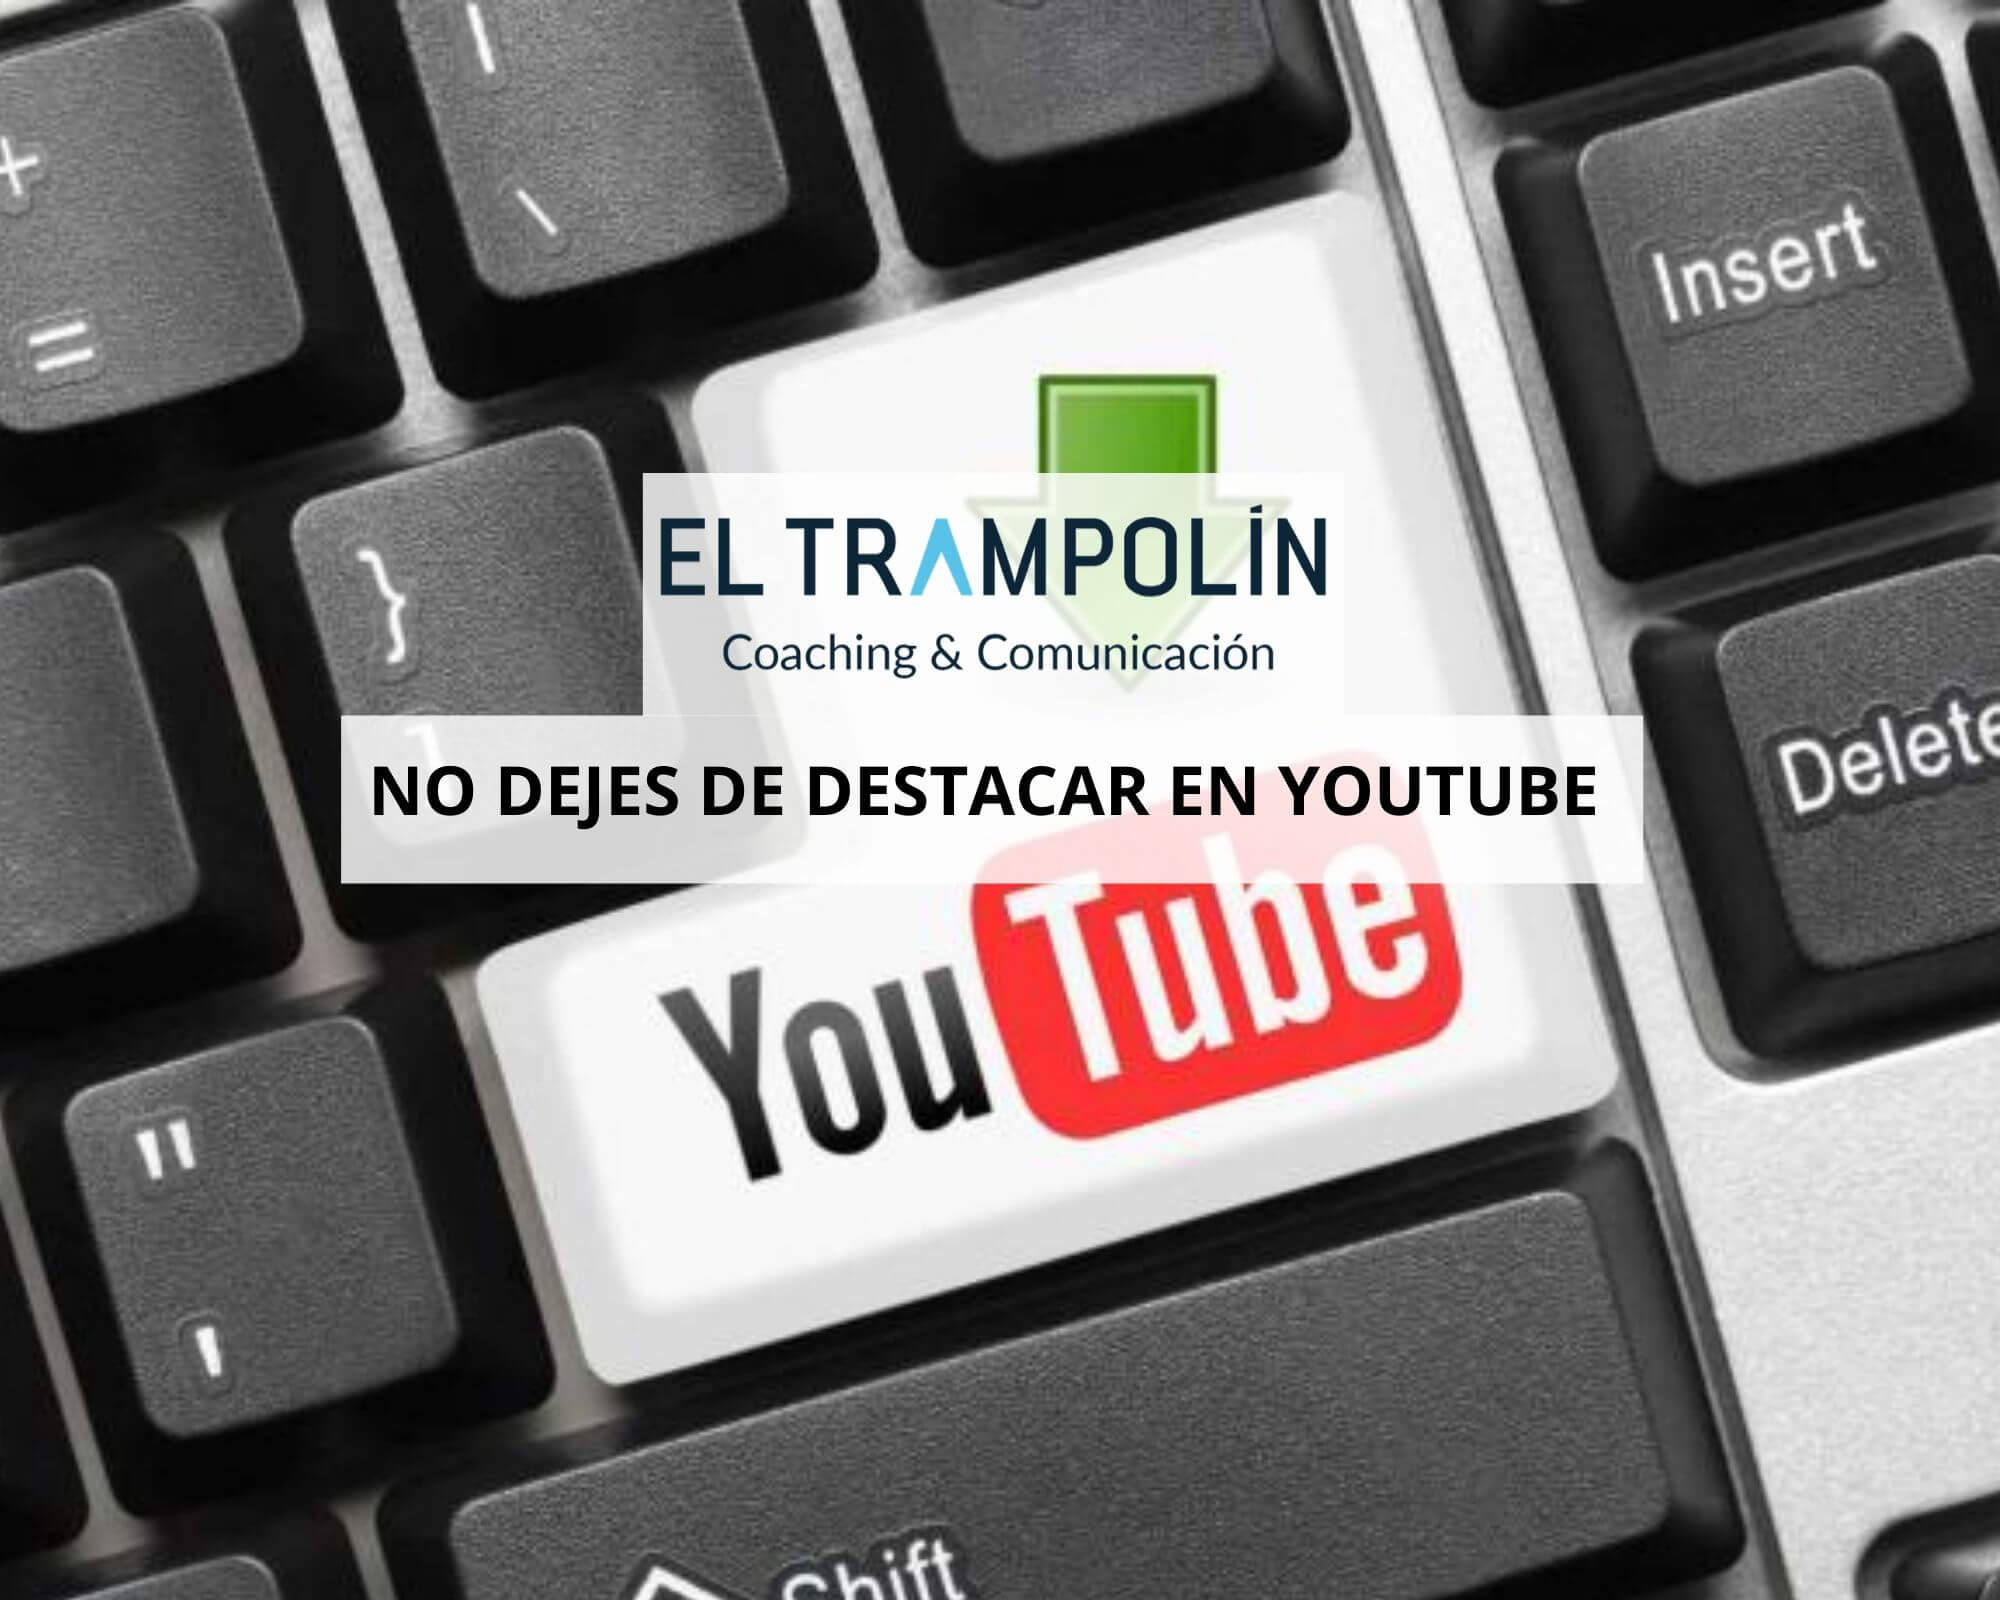 Destacar en Youtube